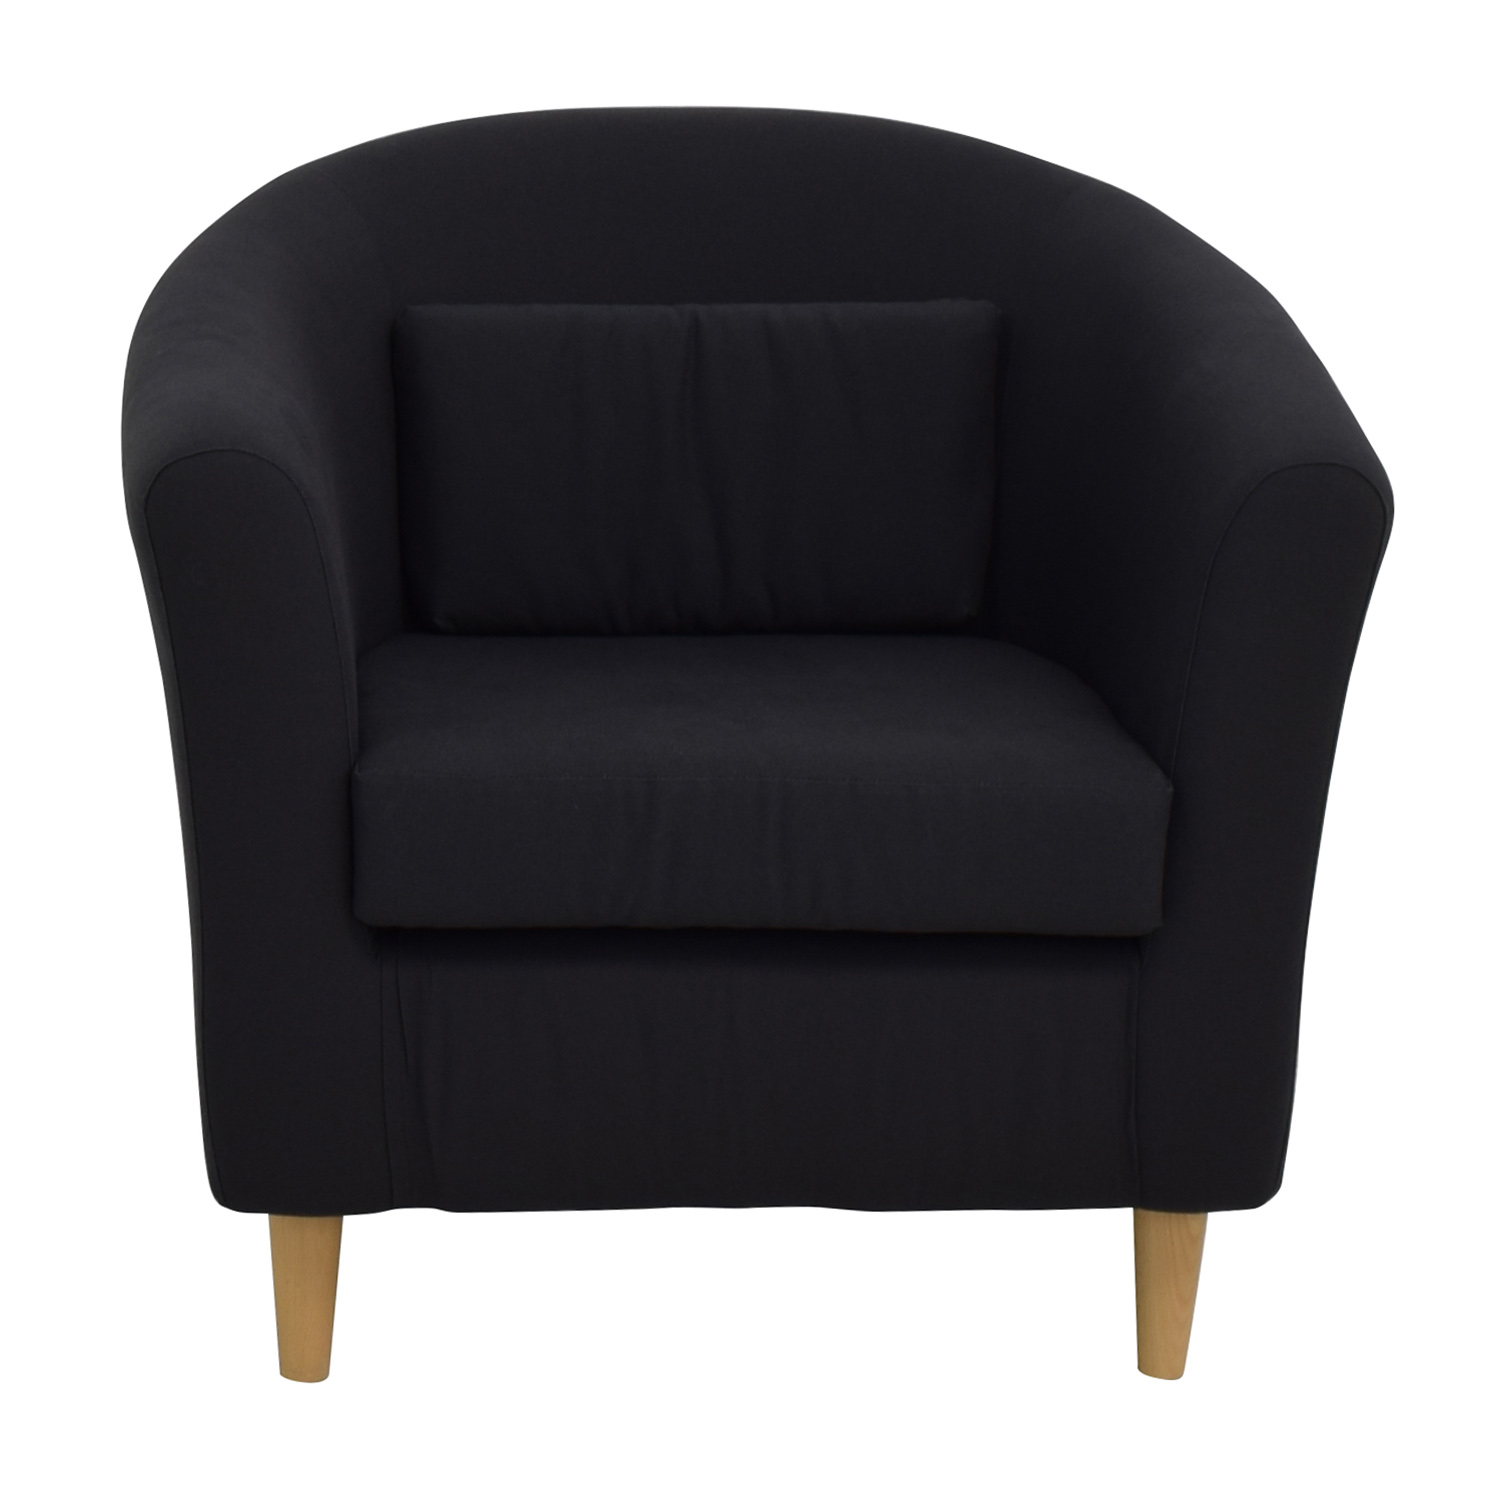 Lovely Accent Chairs Ikea Rtty1 Com Rtty1 Com